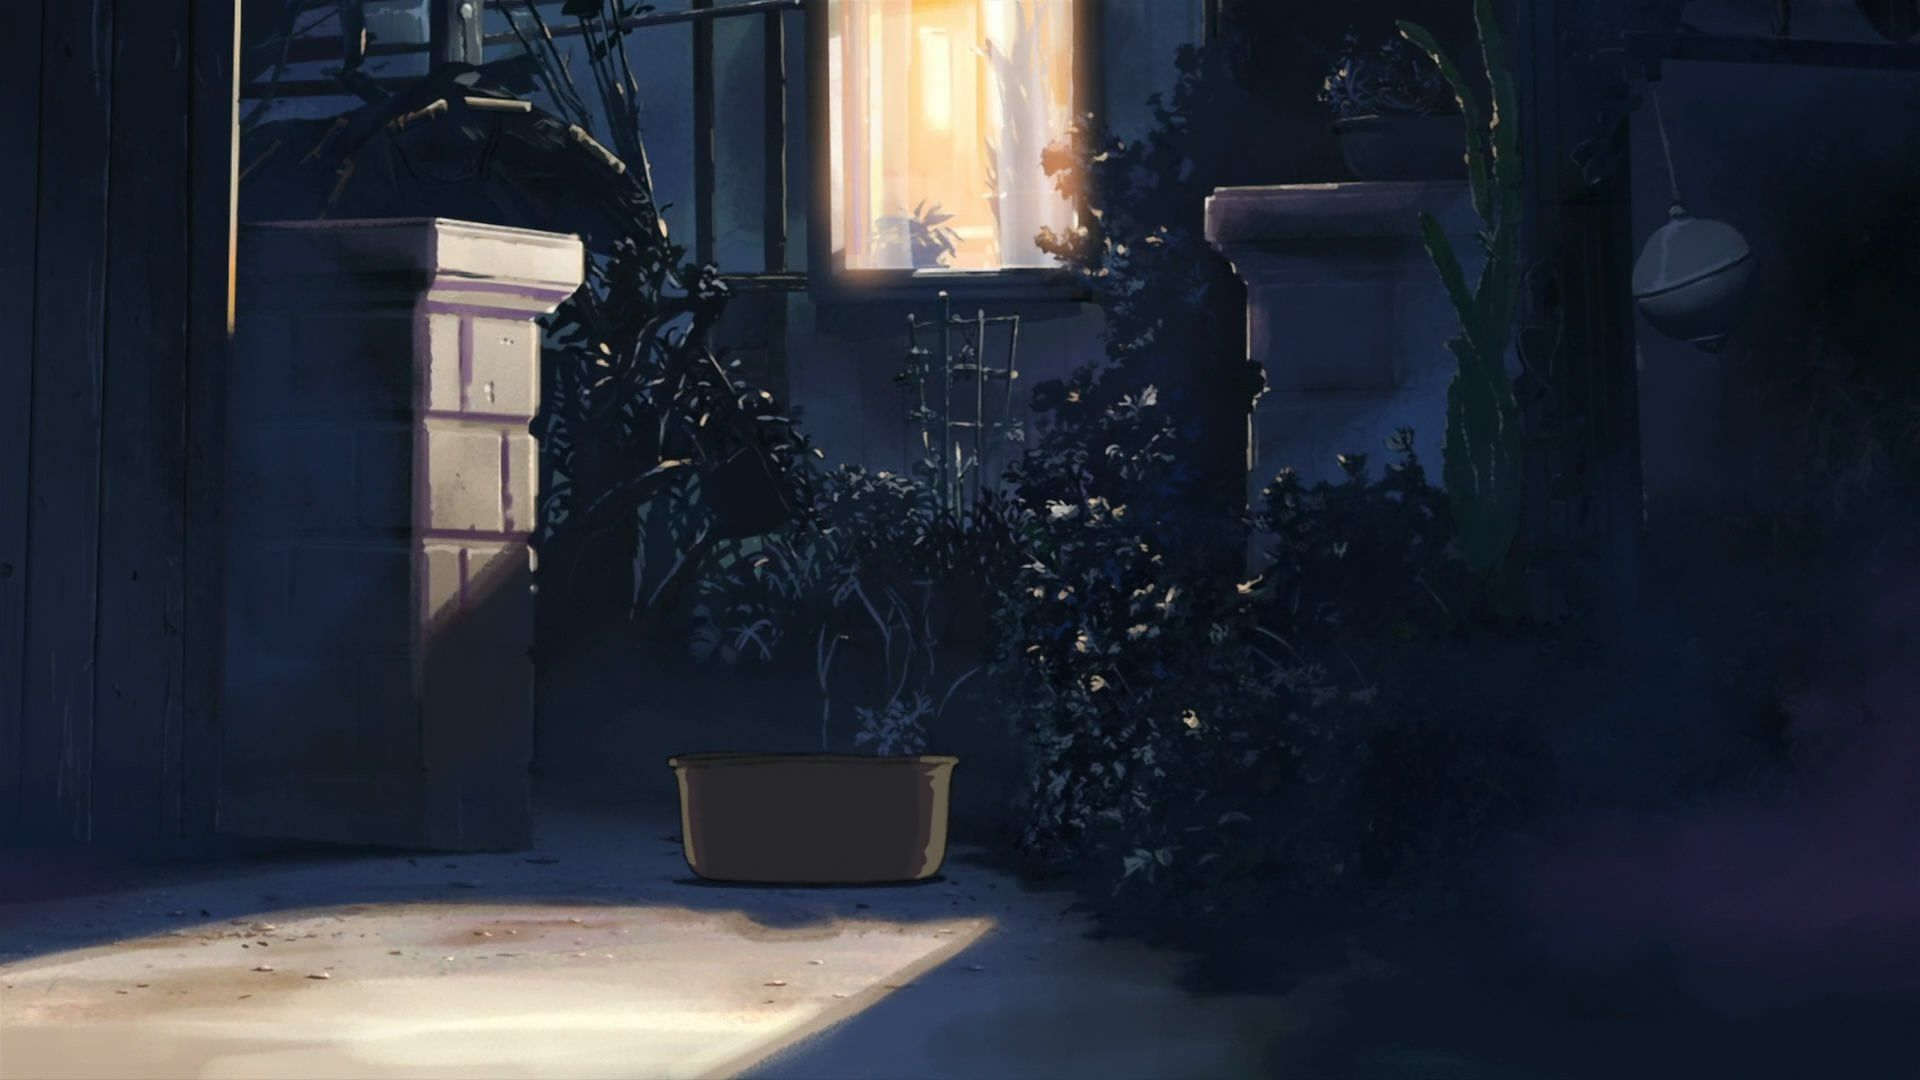 Makoto Shinkai 5 Centimeters Per Second wallpaper